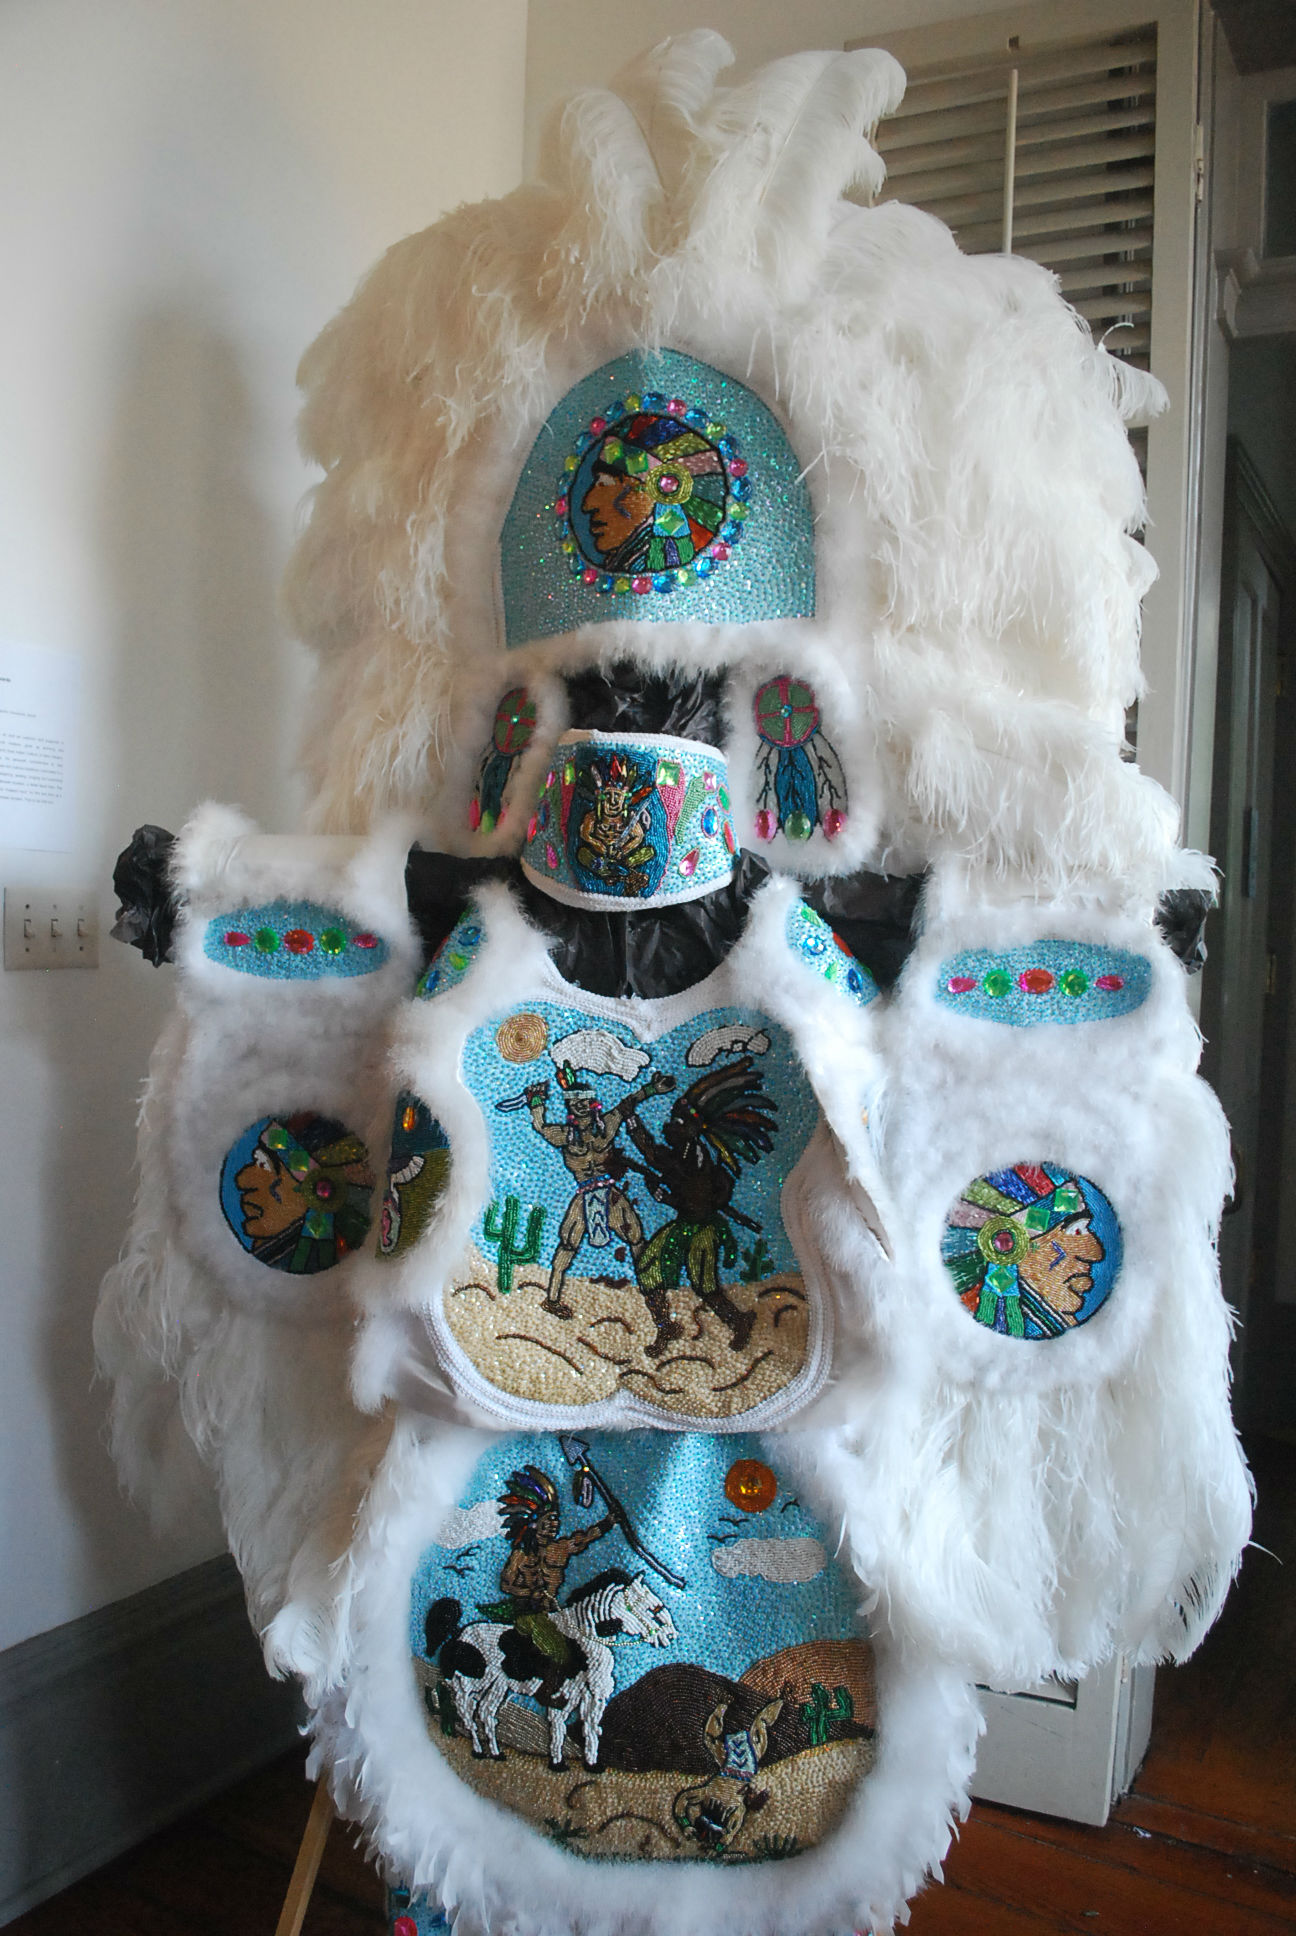 Caption: Mardi Gras Indian costume at New Orleans' African American Museum., Credit: Tonya Fitzpatrick